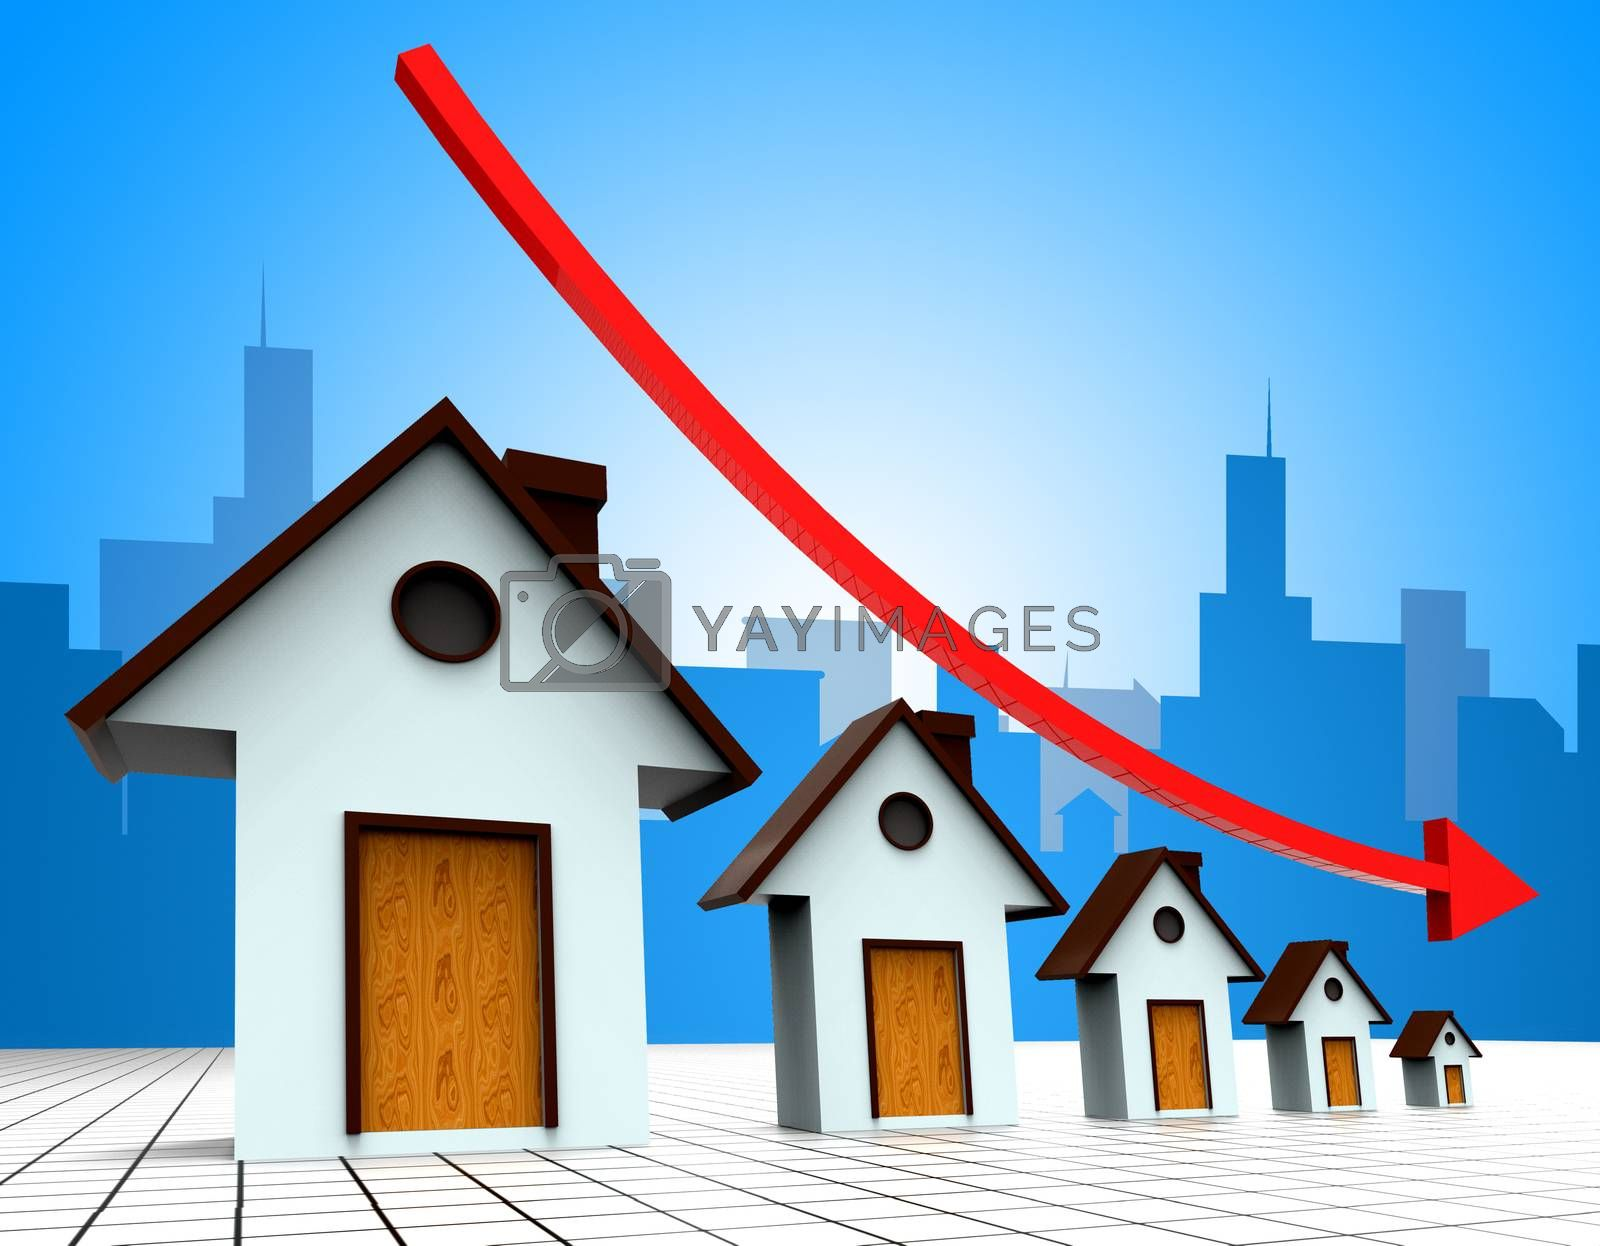 House Prices Down Represents Reduce Regresses And Household by stuartmiles